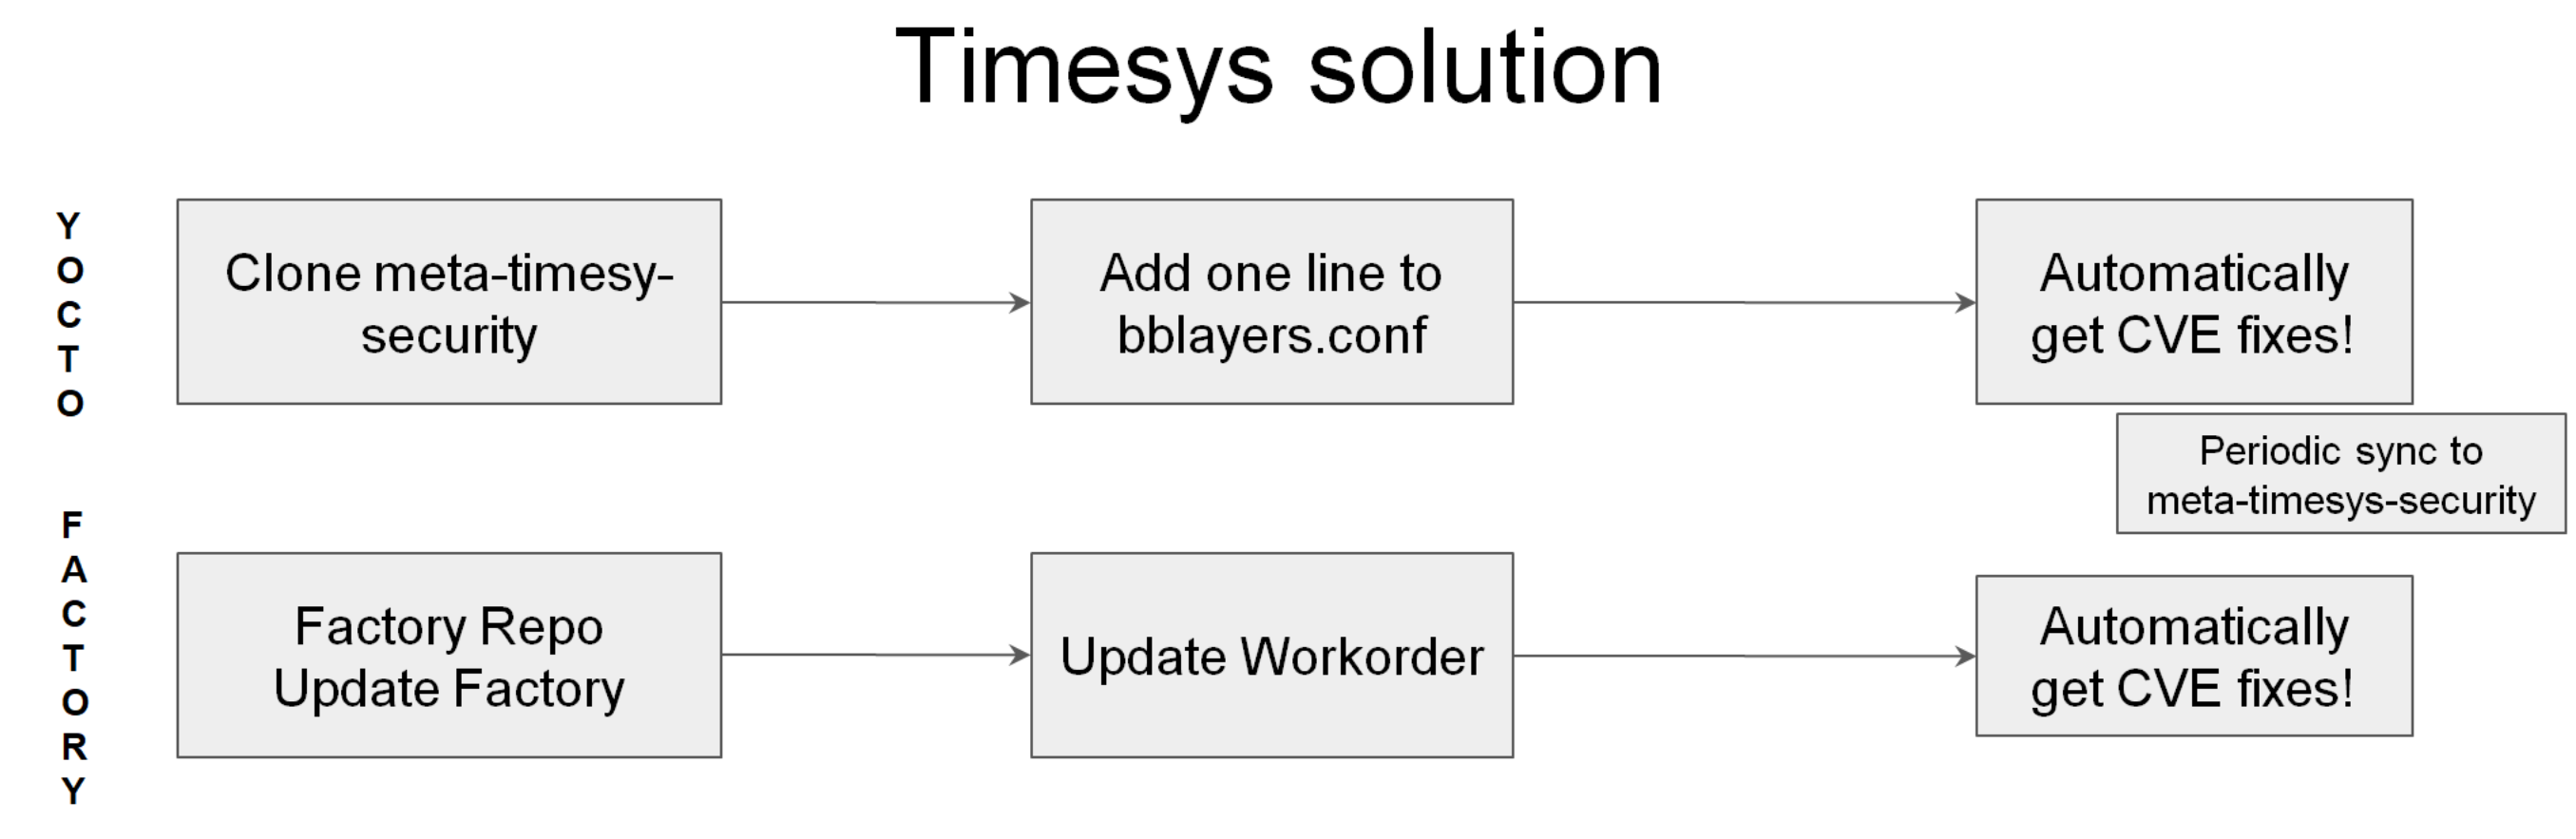 Timesys security vulnerability patching solution